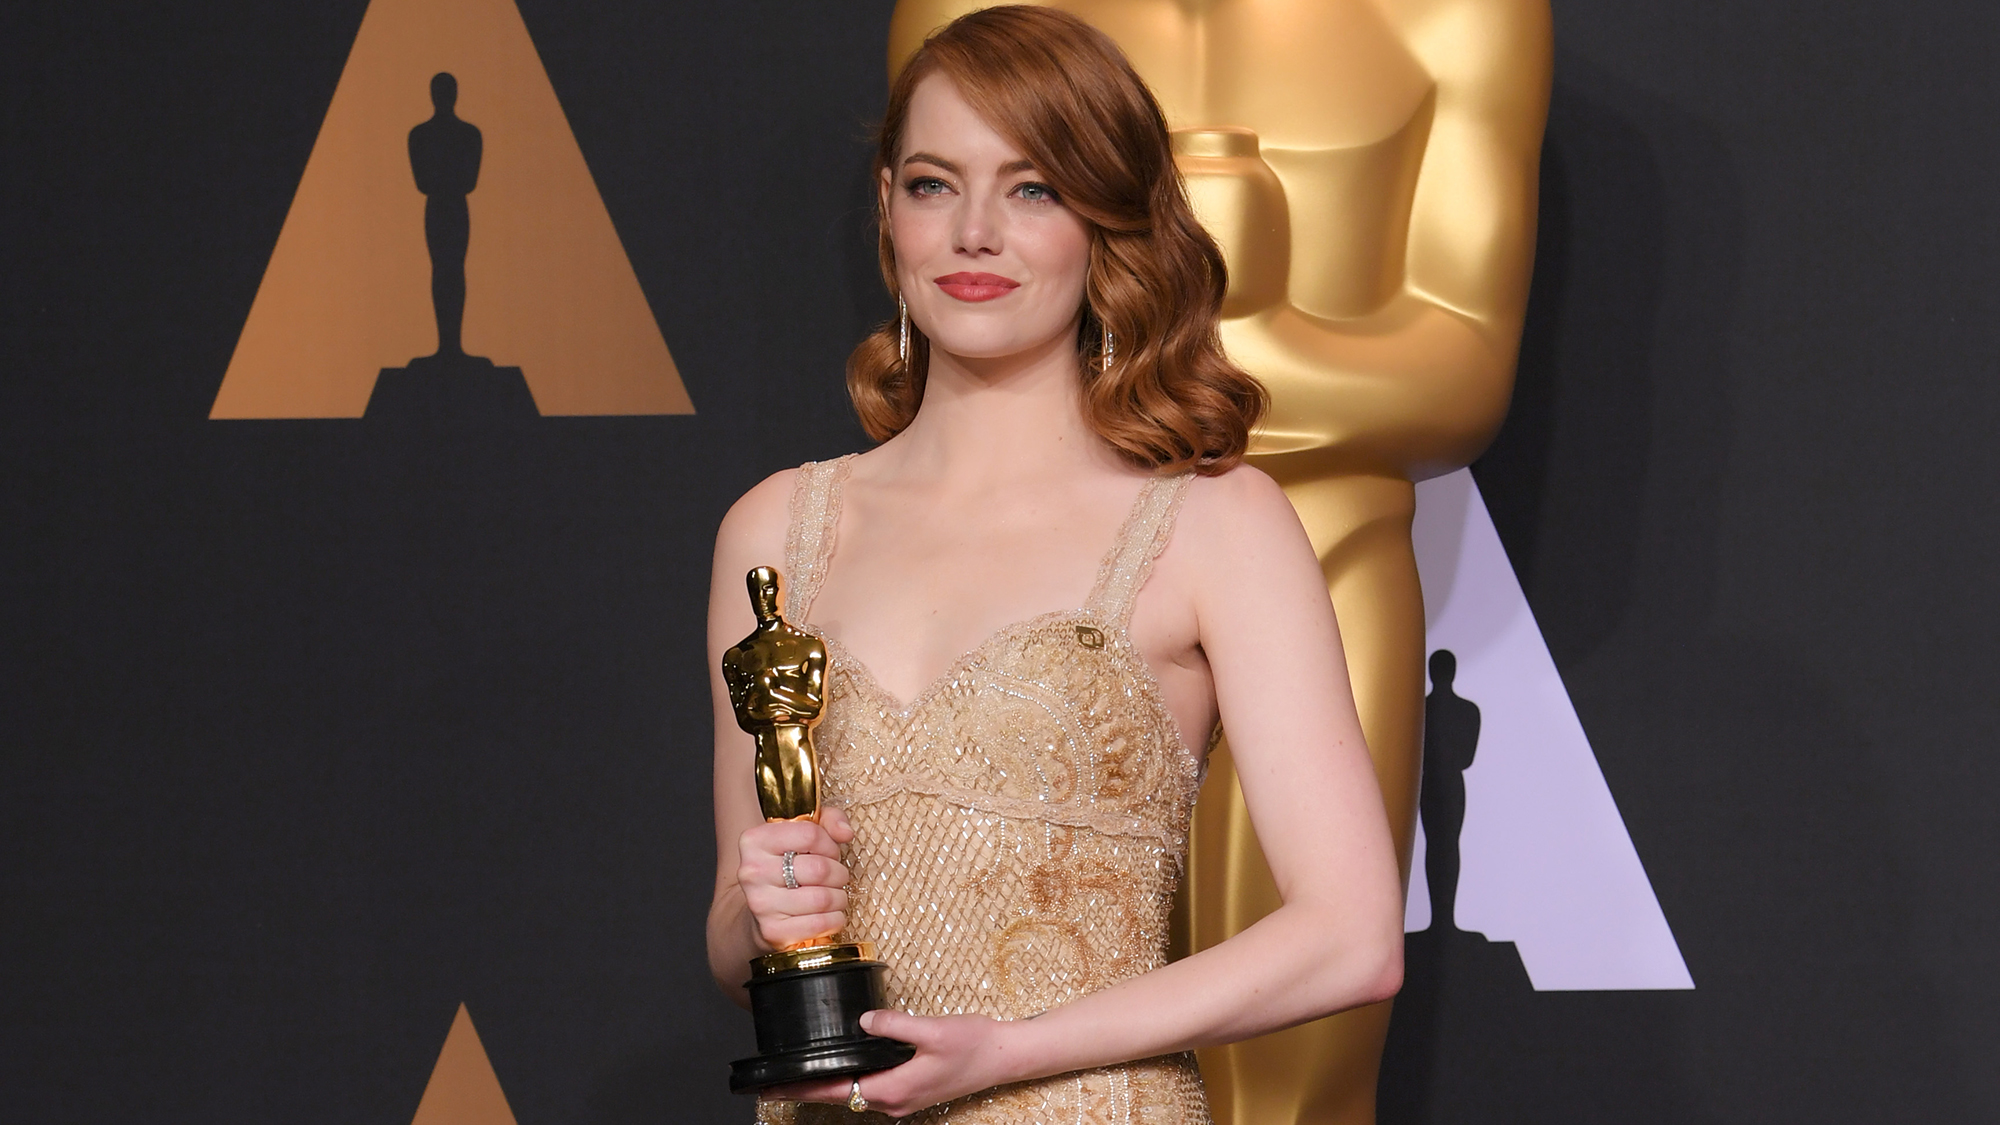 The Important Detail You Missed On Emma Stone's Oscars Dress Emma Stone